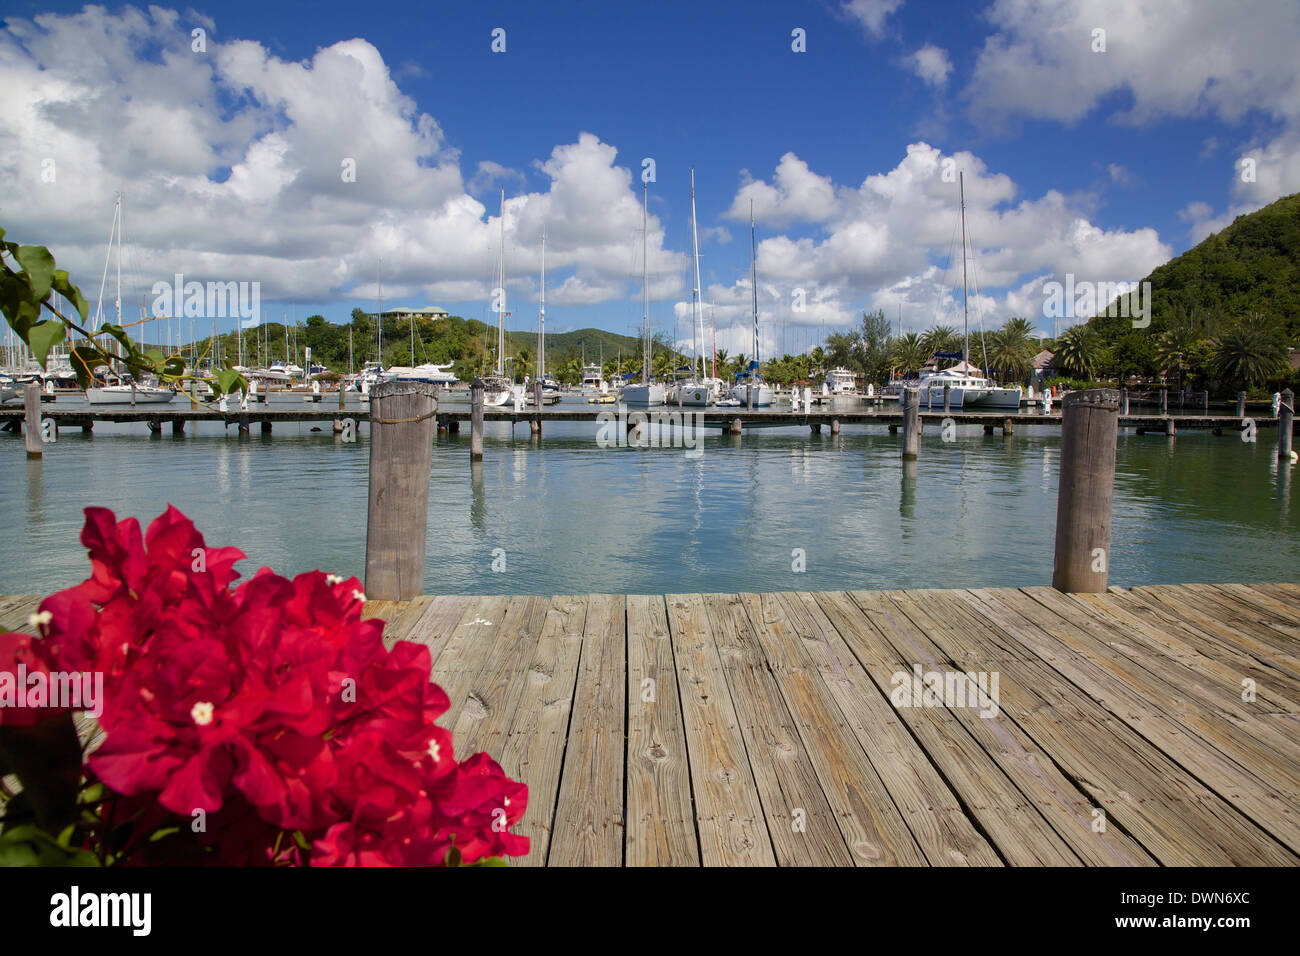 Jolly Harbour, St. Mary, Antigua, Leeward Islands, West Indies, Caribbean, Central America - Stock Image